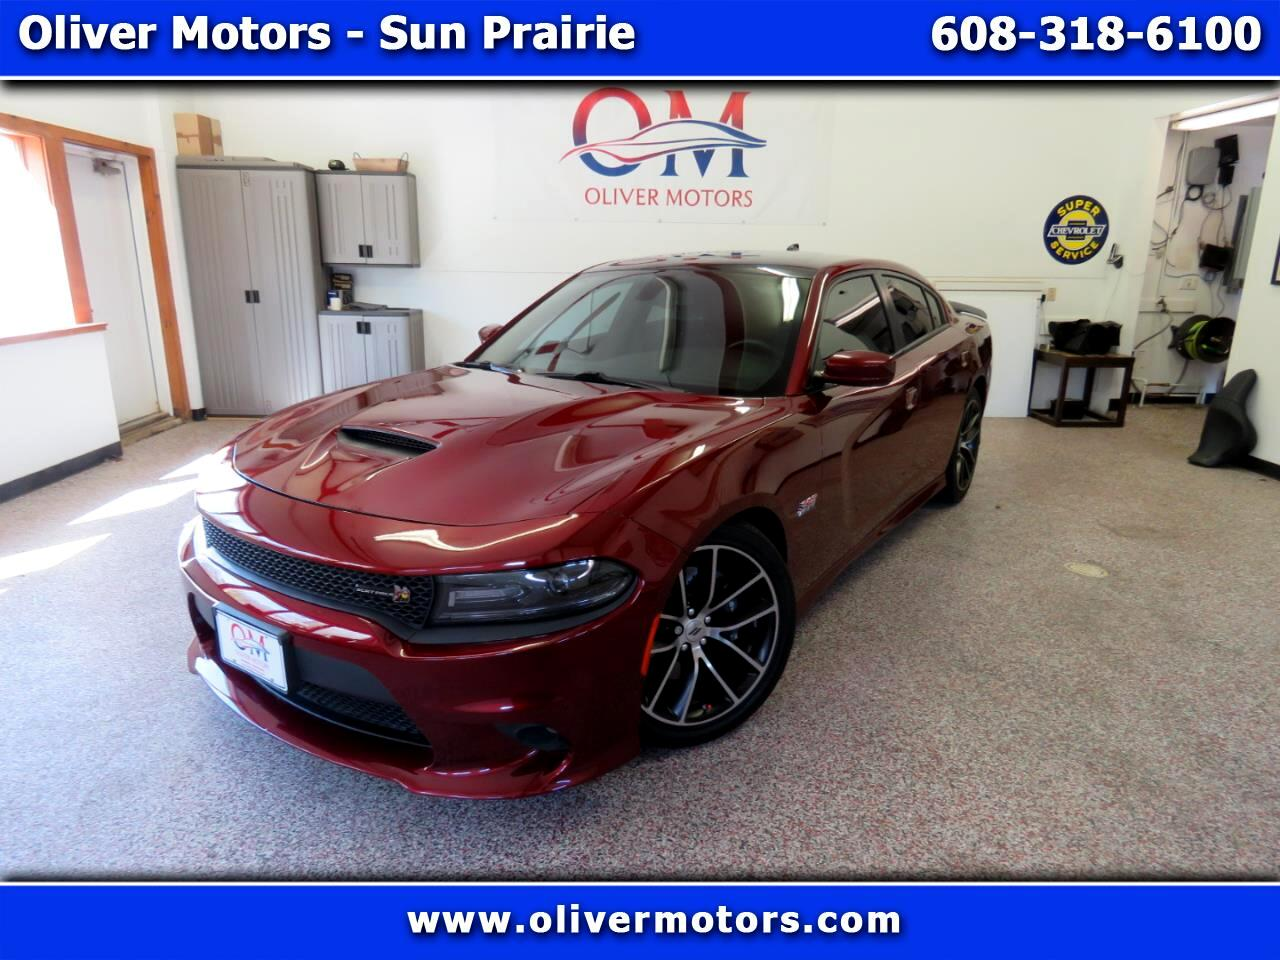 Dodge Charger R/T Scat Pack RWD 2018